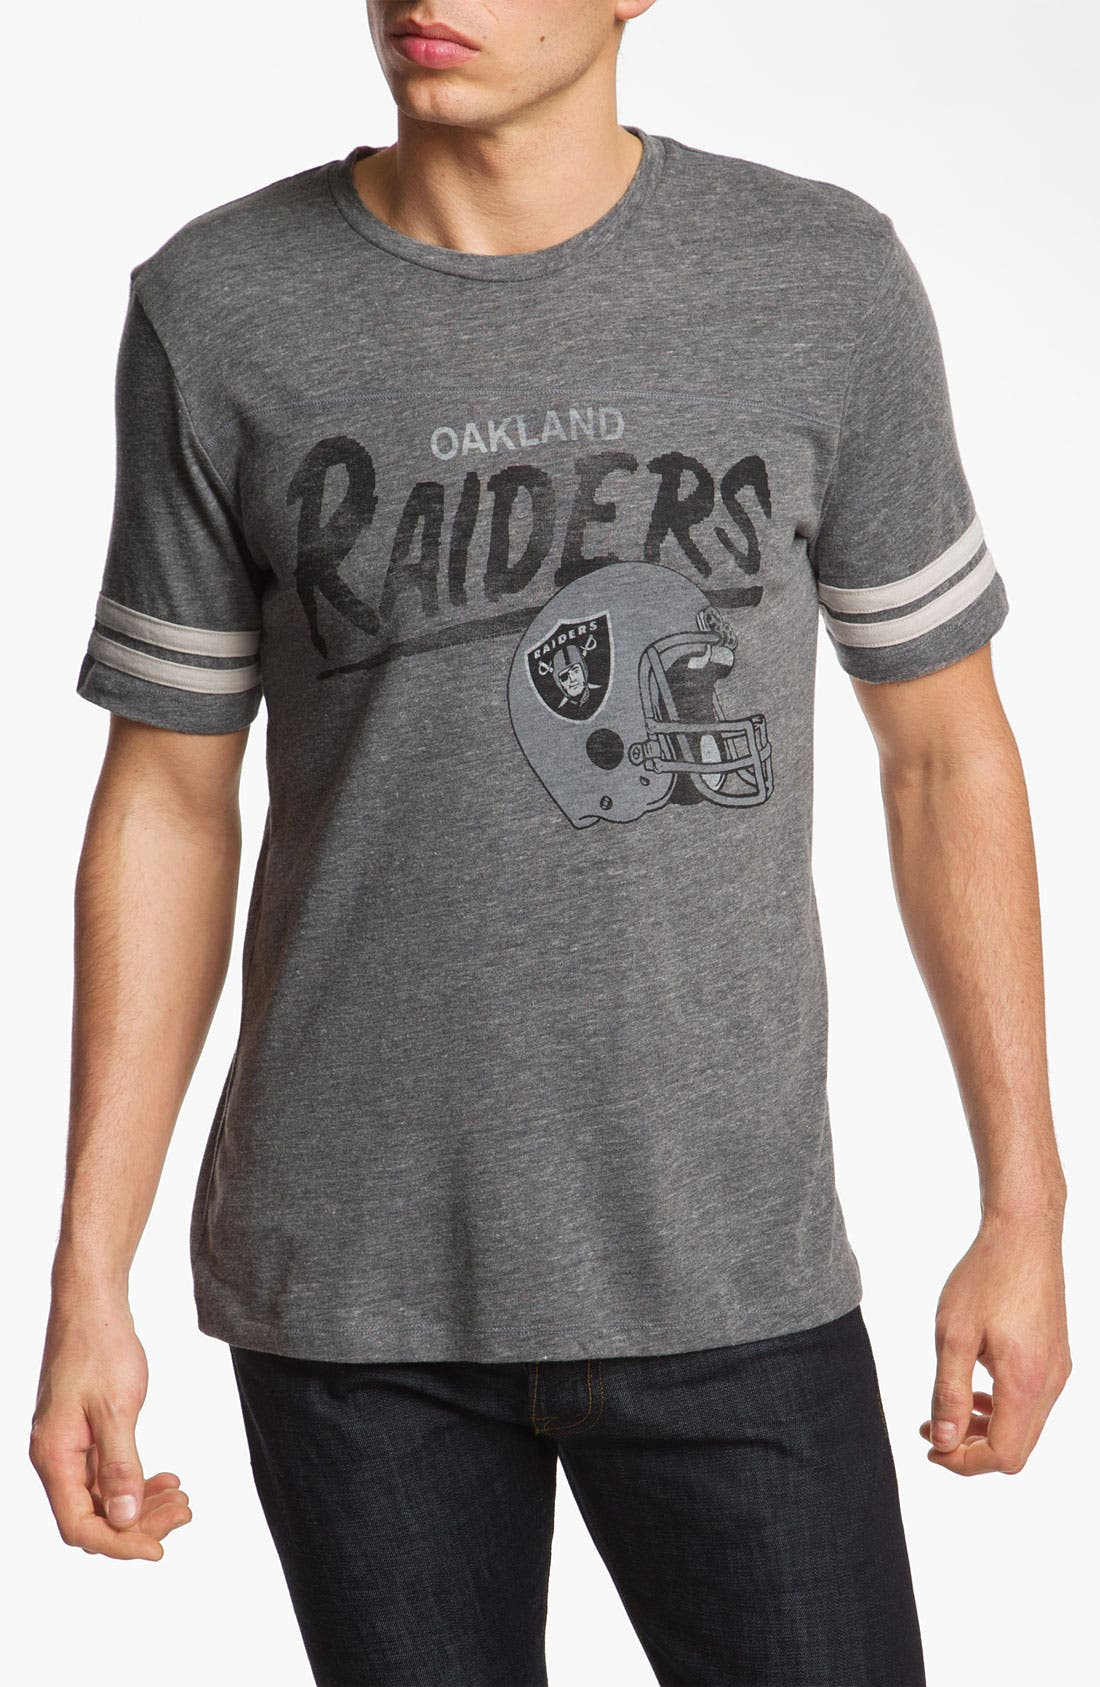 Alternate Image 1 Selected - Junk Food 'Oakland Raiders' T-Shirt